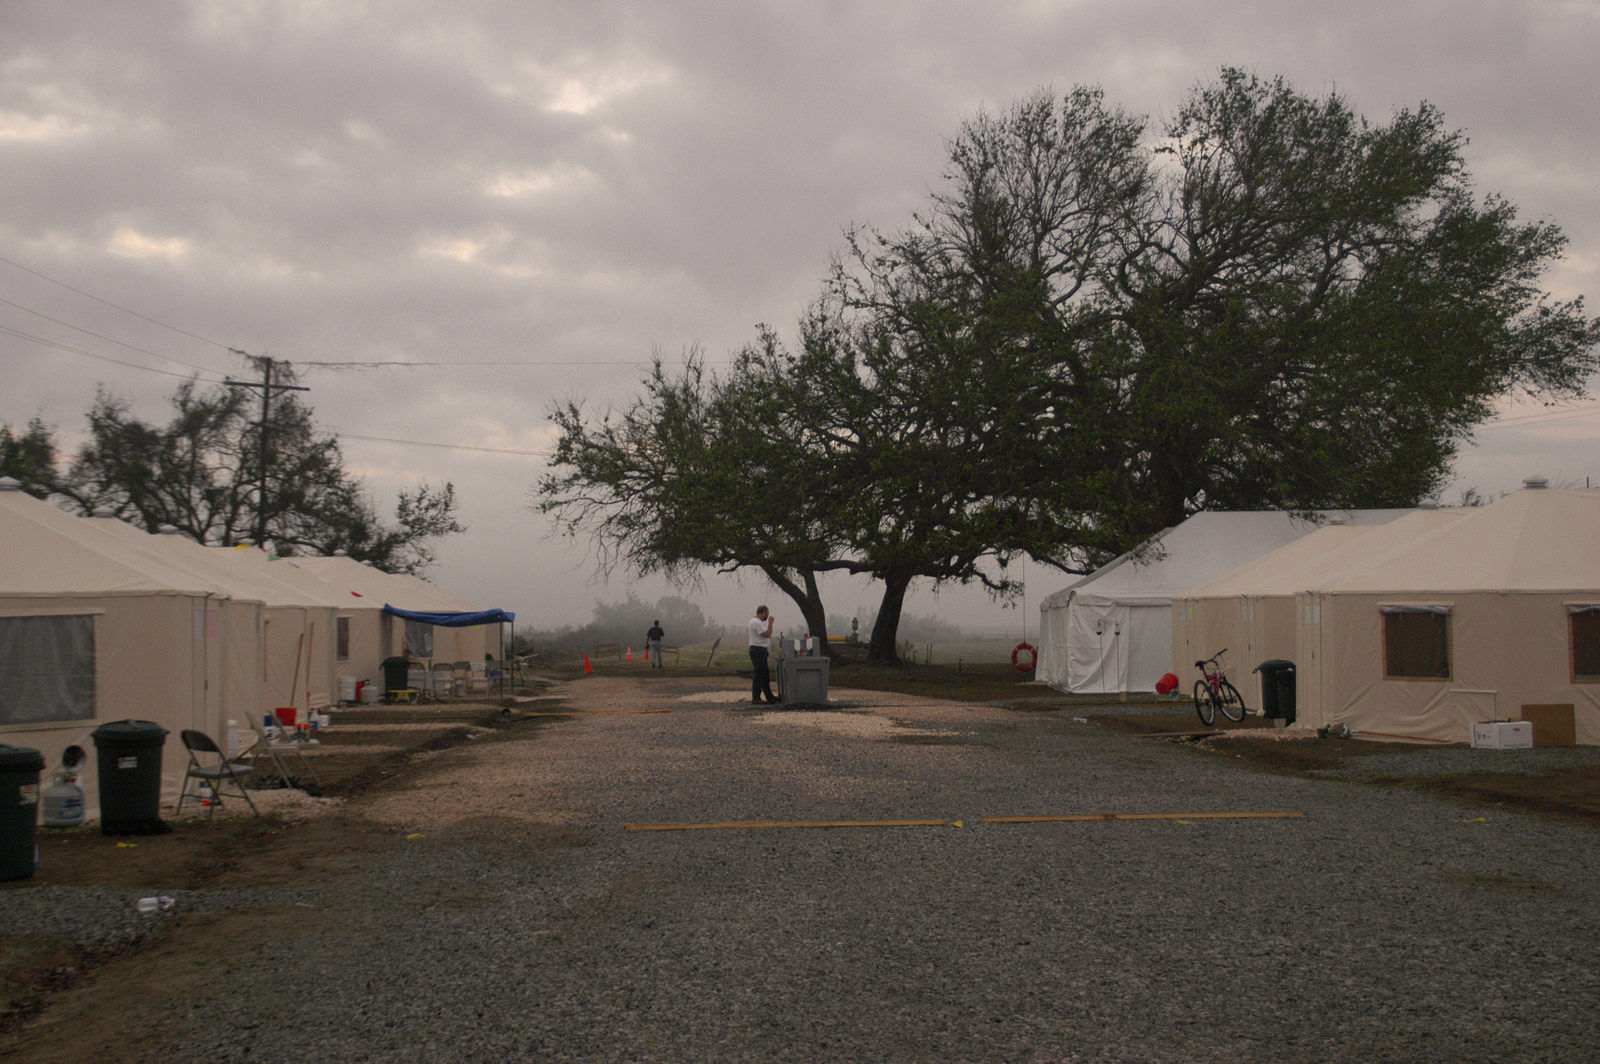 [Hurricane Rita] Cameron, LA, 11-10-05 -- FEMA Base camp workers sleep in these tents.  FEMA Base Camps are used when there are no other resources to house FEMA & emergency workers... in this case the nearest lodging, if you can find a room, is 70 miles away on rural roads.  MARVIN NAUMAN/FEMA photo